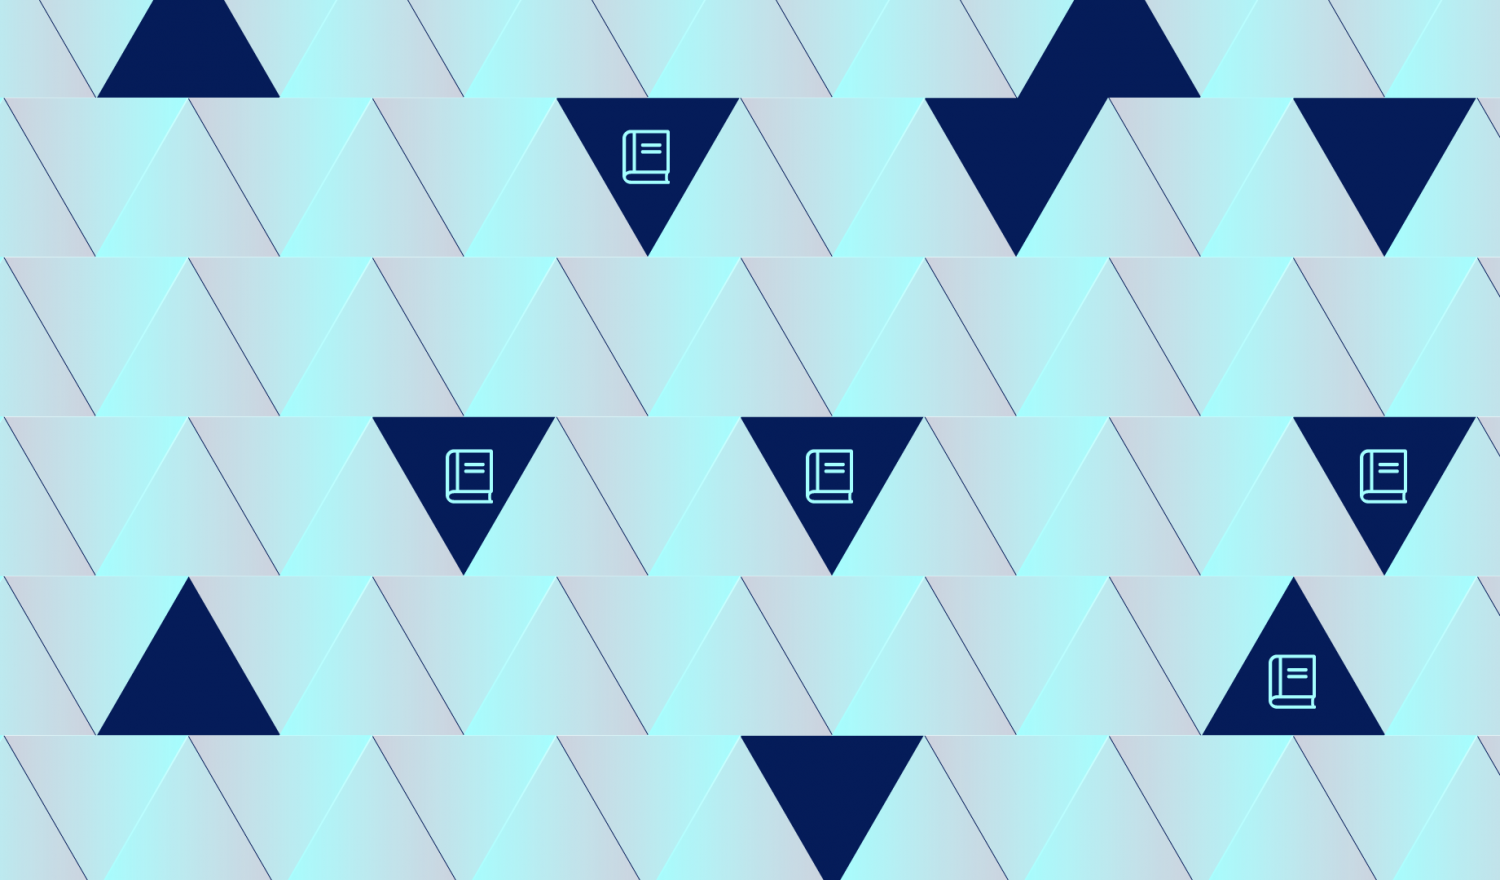 A triangle pattern hiding ledger icons